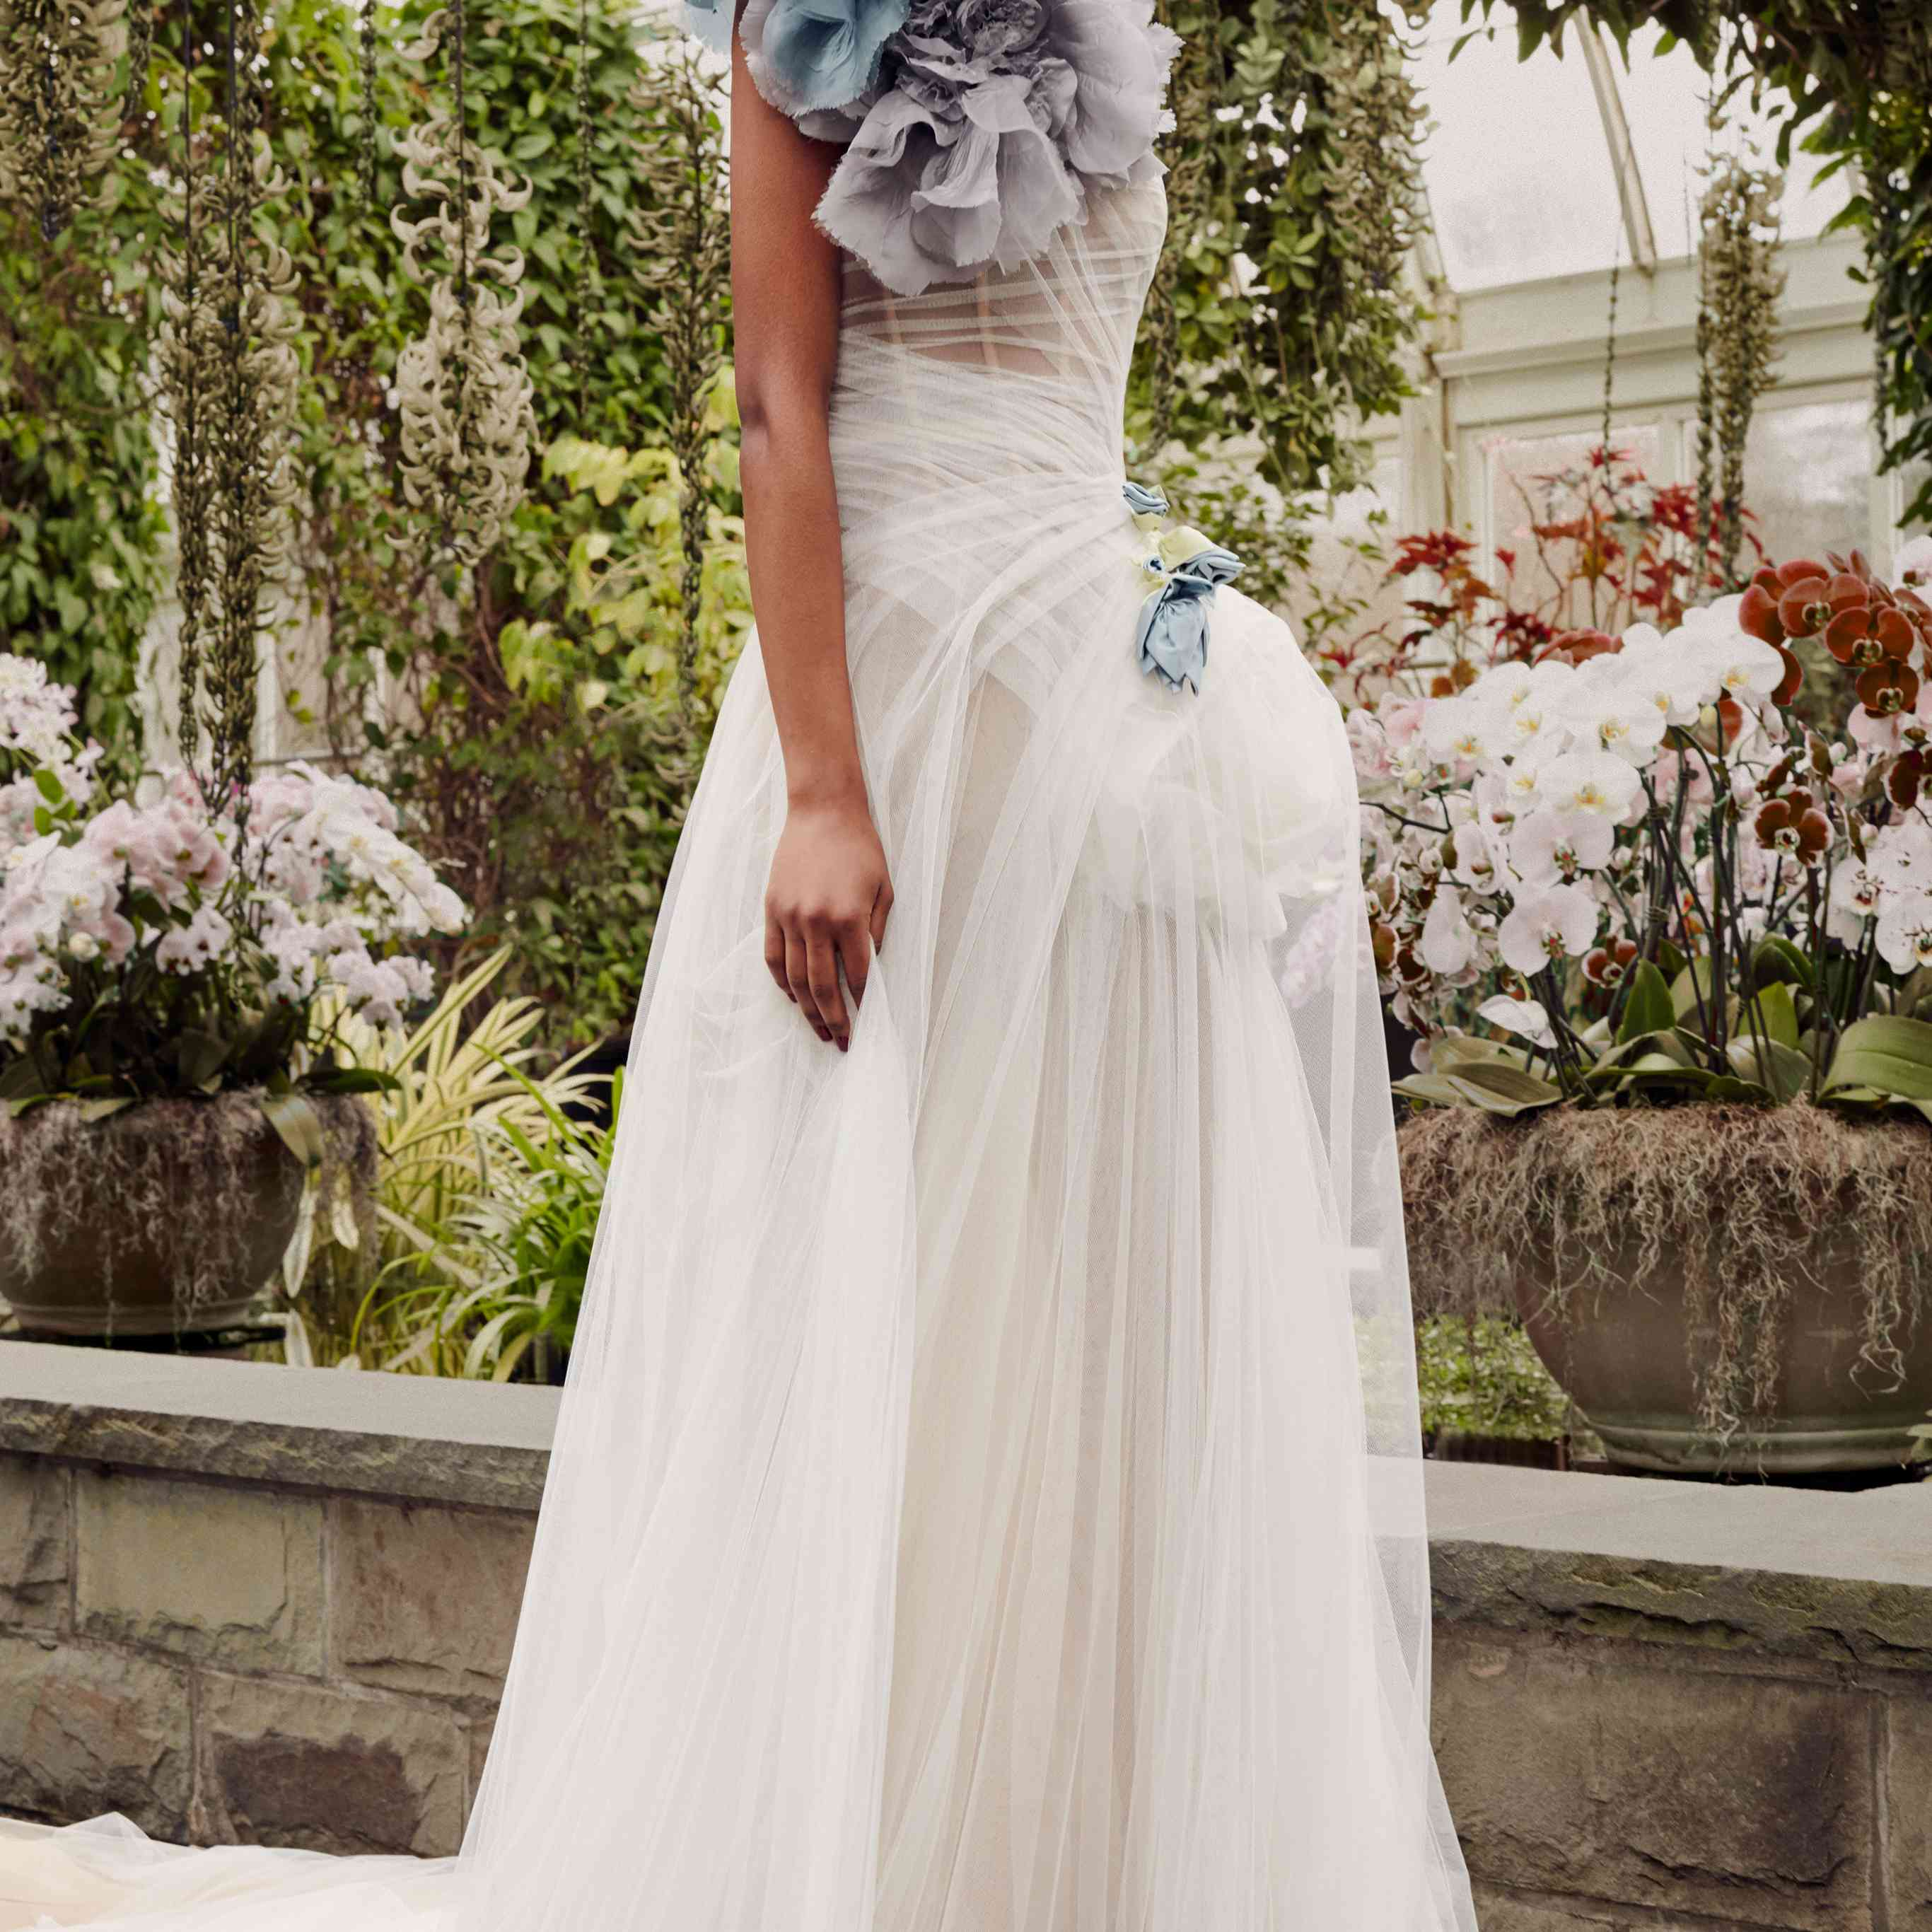 Model in sheer white tulle gown with flower accent at the waist and blue and gray flower accents at the shoulder